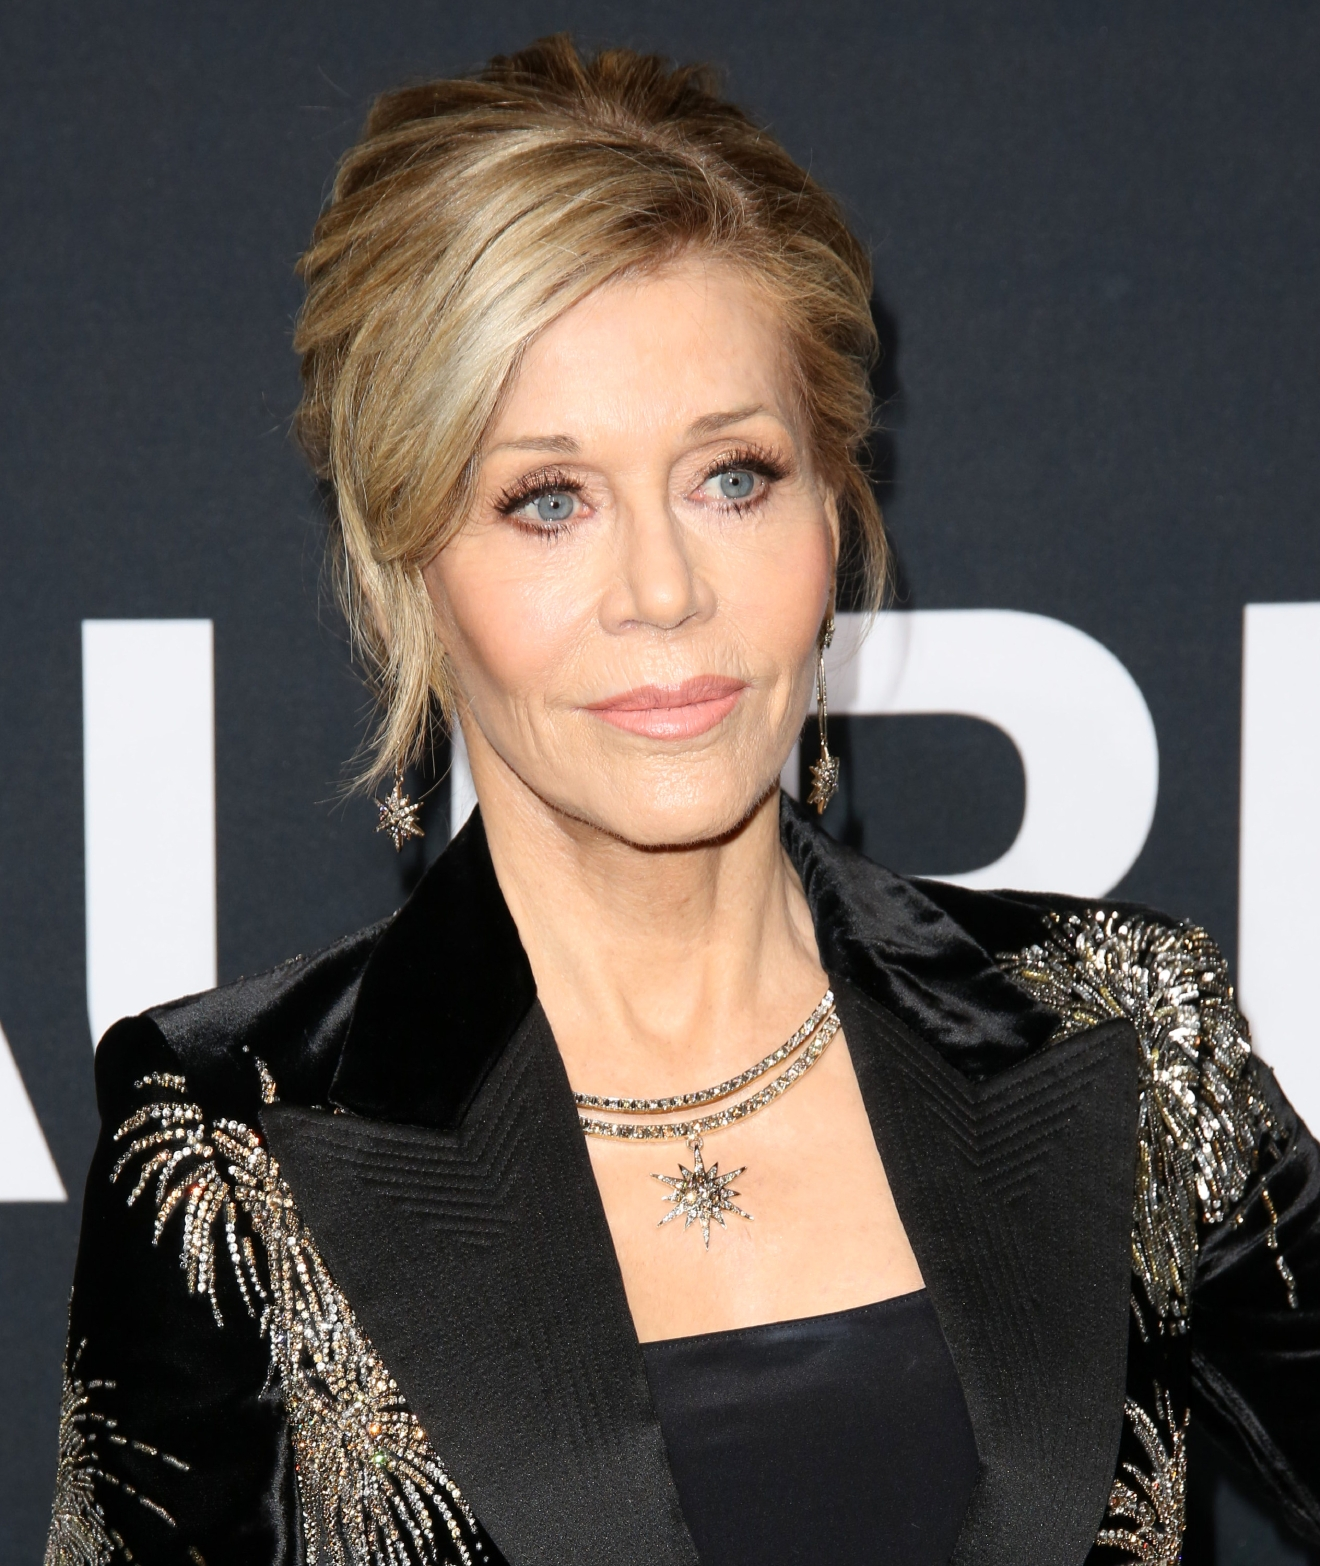 Saint Laurent at Hollywood Palladium - Arrivals  Featuring: Jane Fonda Where: Los Angeles, California, United States When: 10 Feb 2016 Credit: Brian To/WENN.com